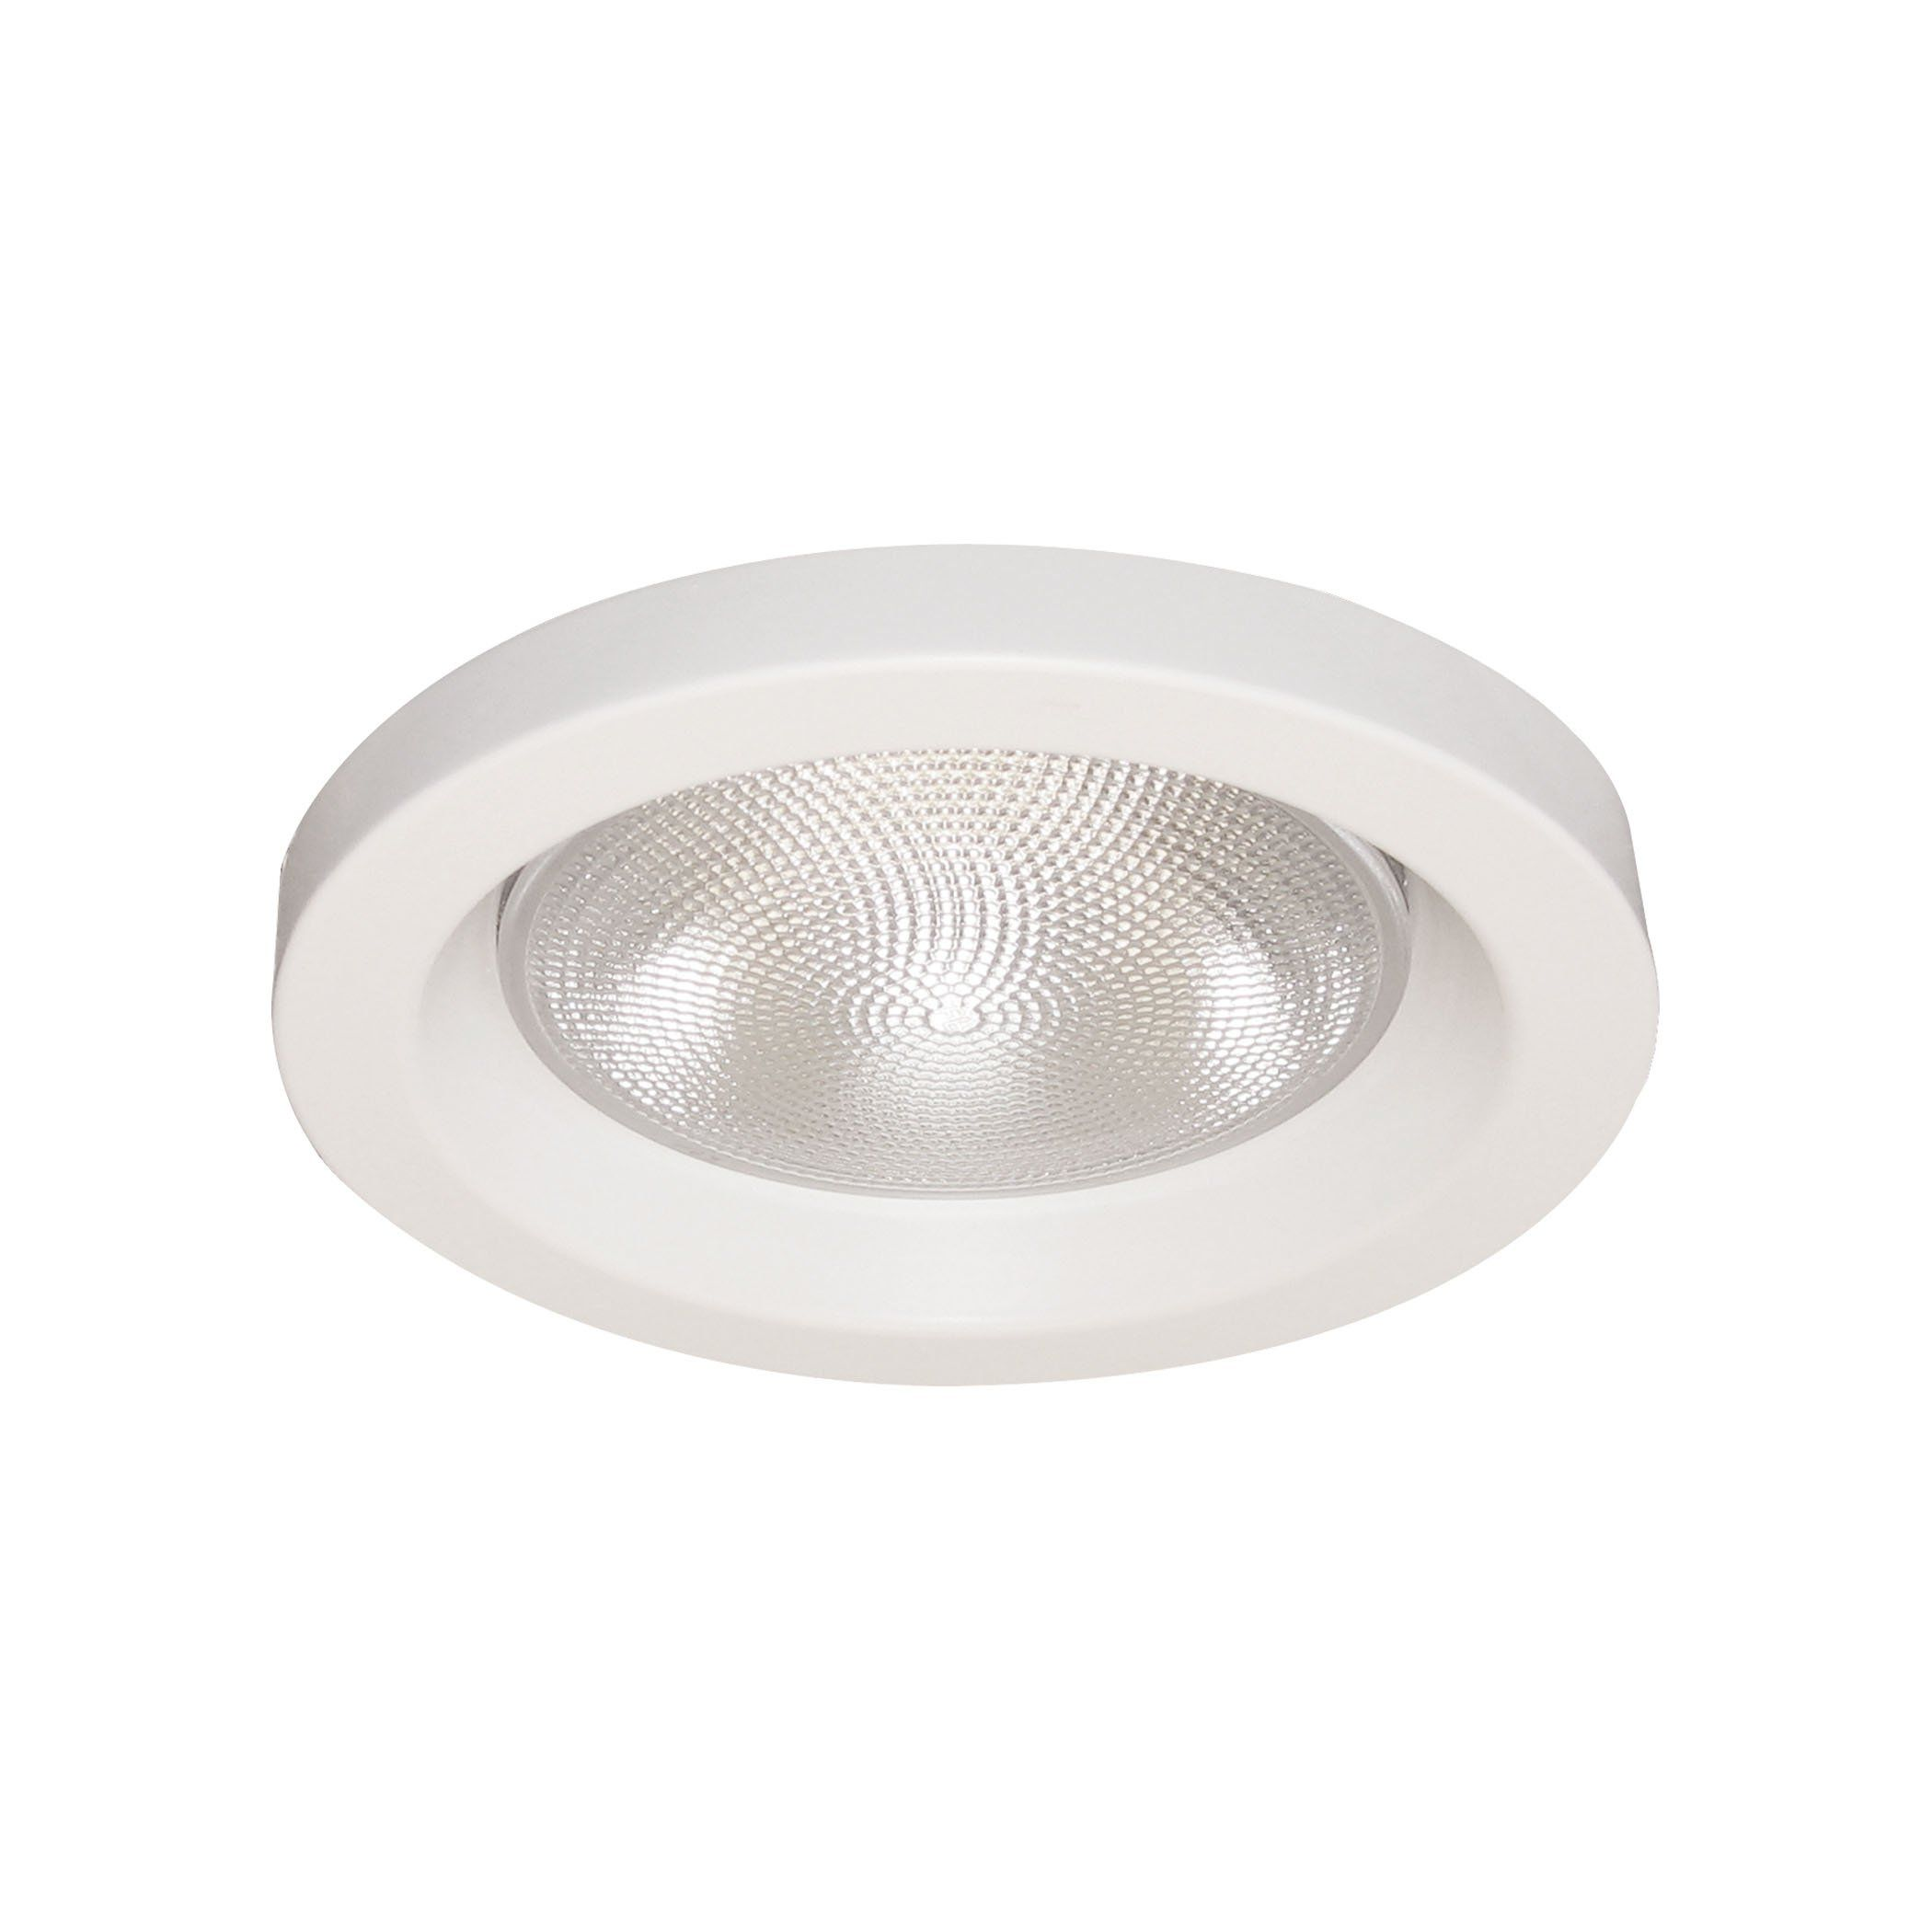 Recessed Colour Not Specified Recessed Lighting Thomas Lighting